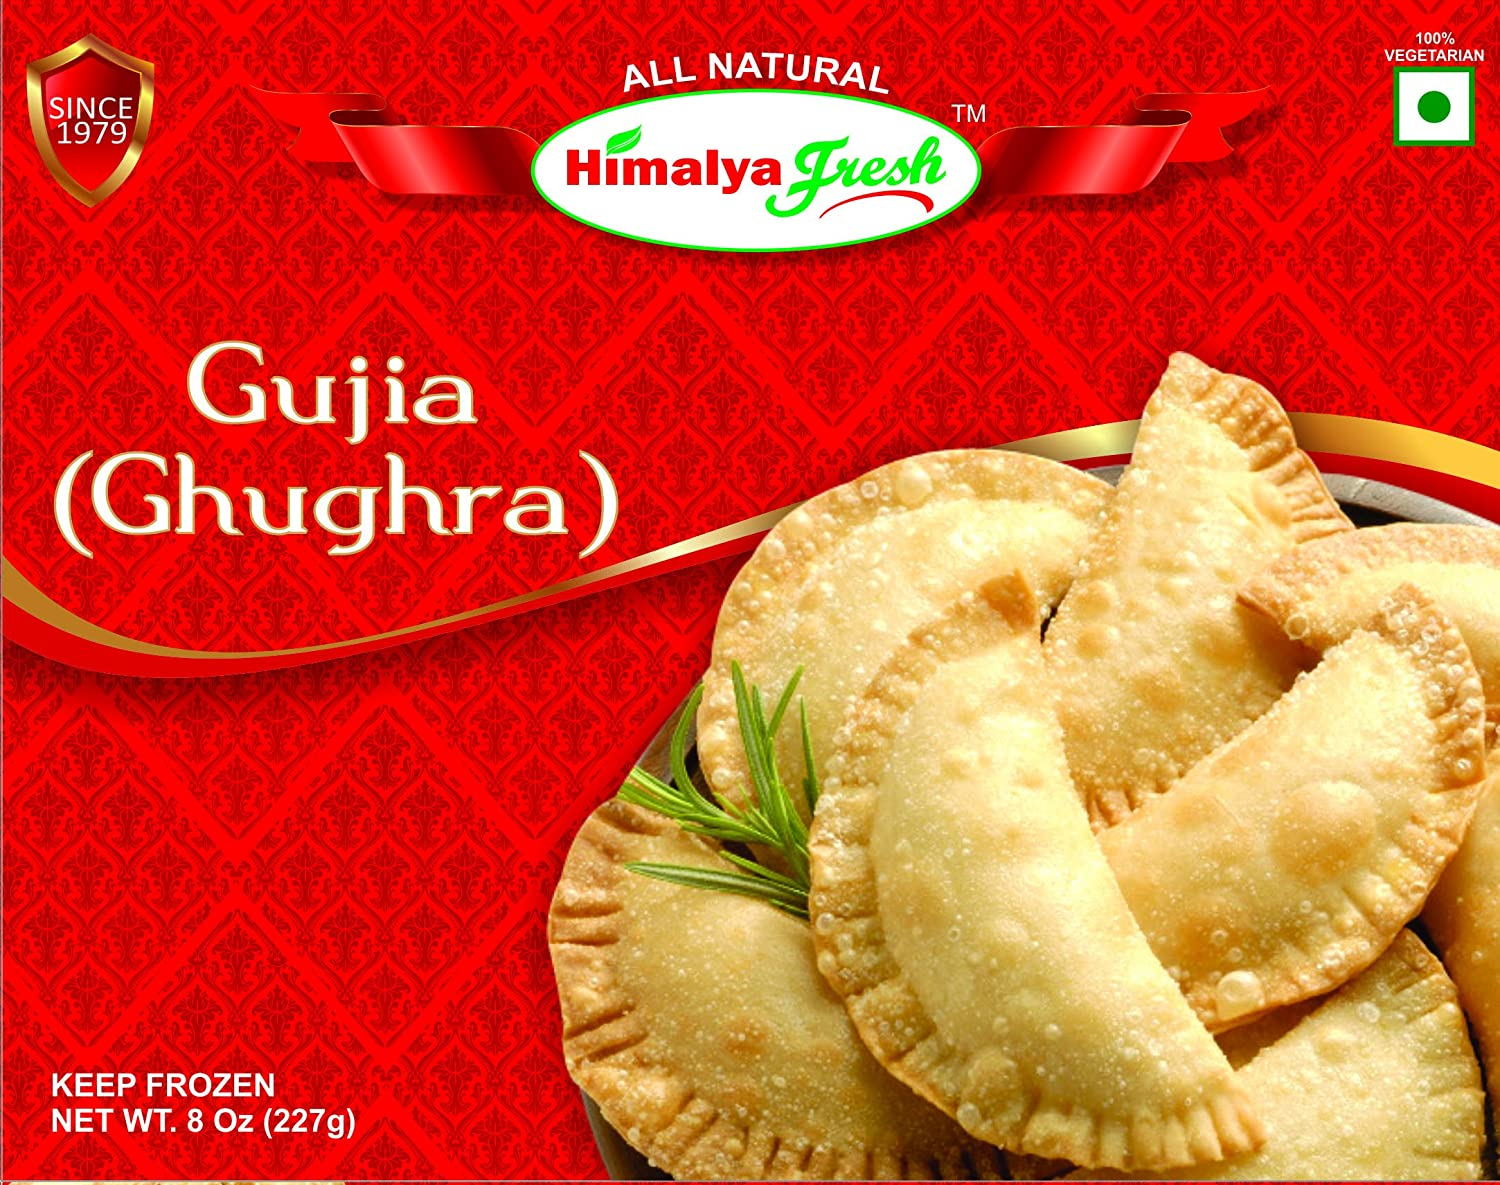 HIMALYA FRESH Gujia (Ghughra) 8oz - Premium Authentic Indian Food & Sweets Made With Pure Buffalo Milk - No Fillers Or Preservatives (1 Box)